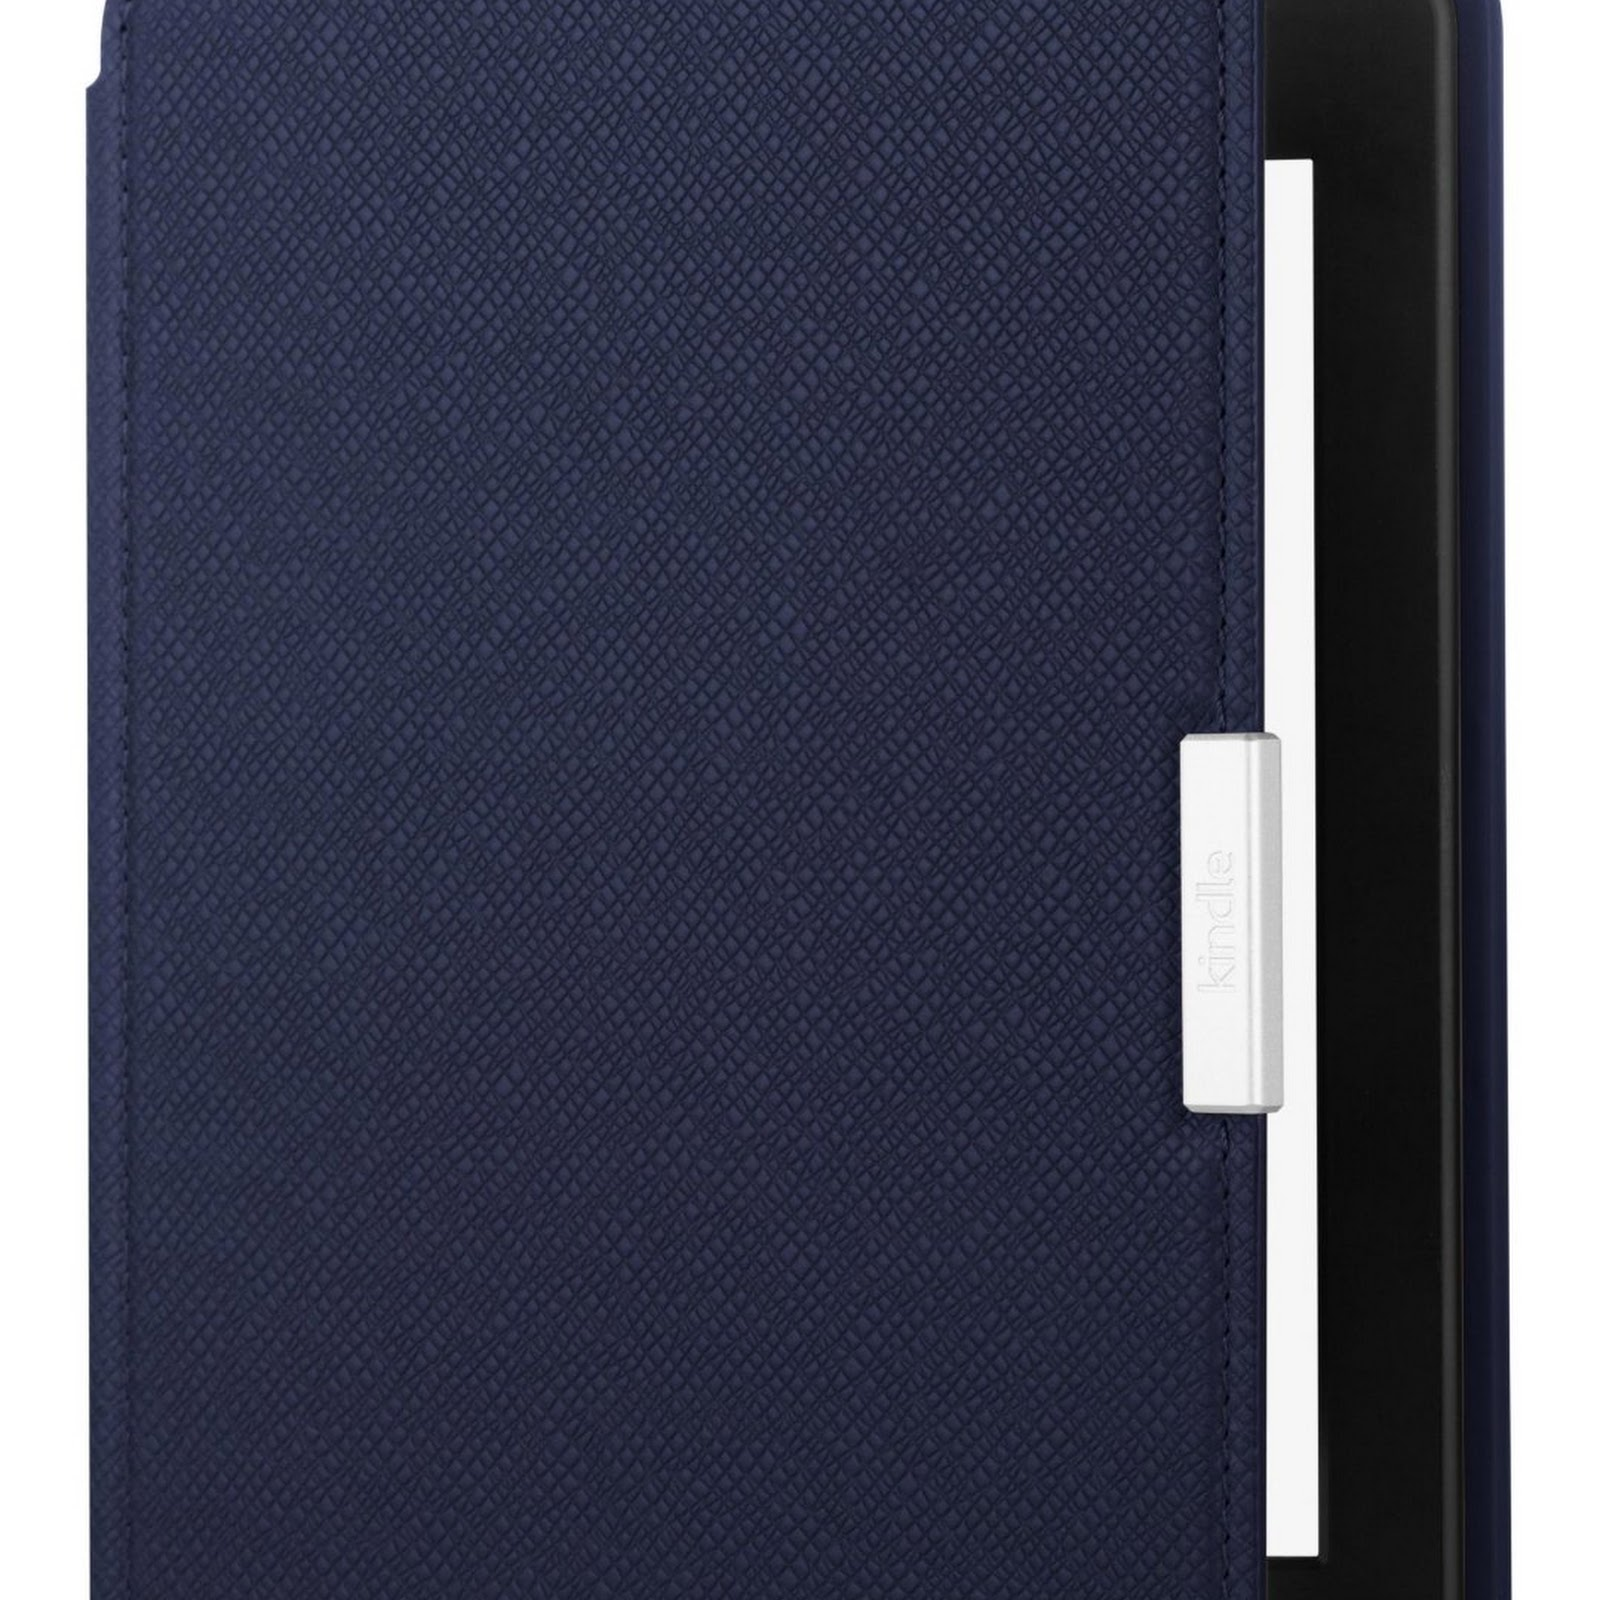 Funda de cuero para Kindle Paperwhite